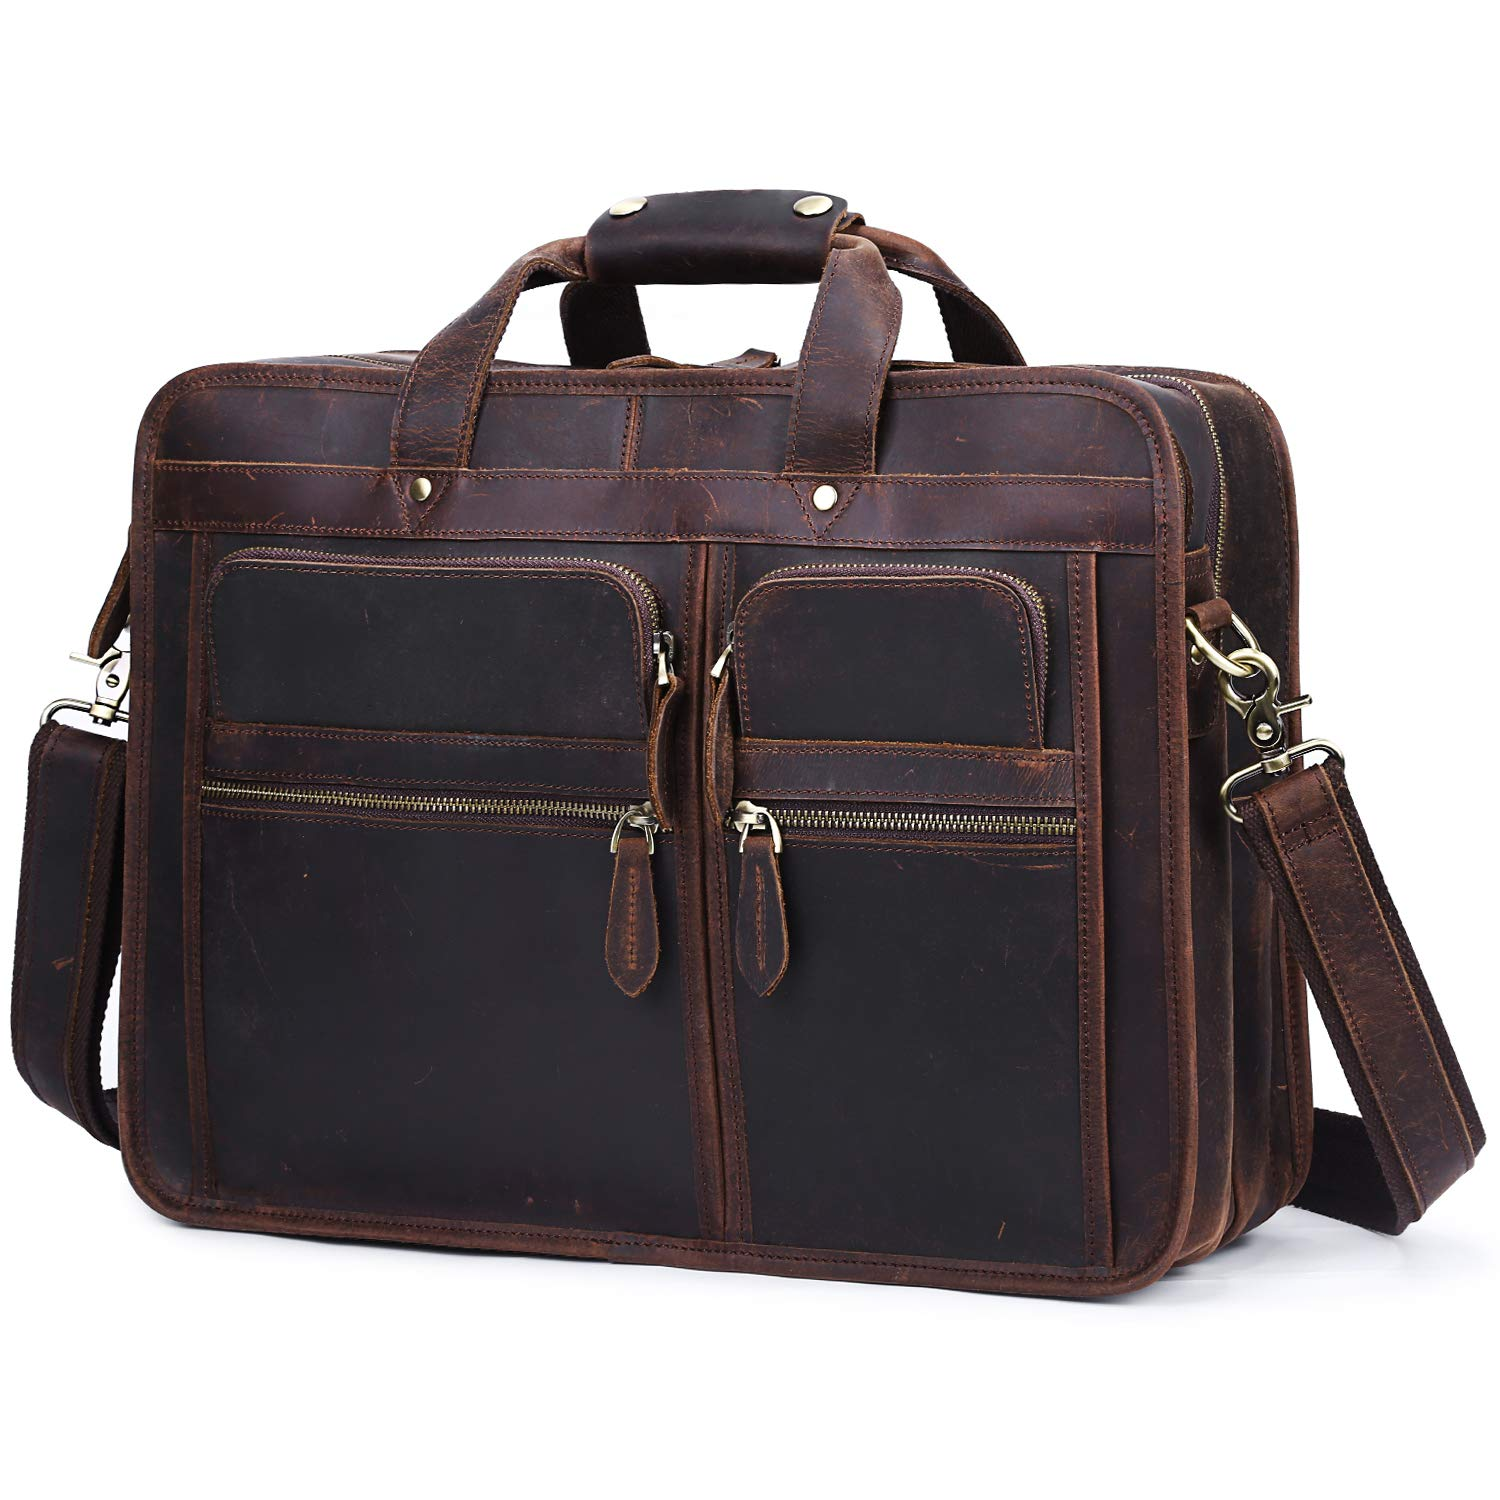 S-ZONE Men s Leather Briefcase 15.6 Inch Laptop Travel Bag Duffle Messenger Bag